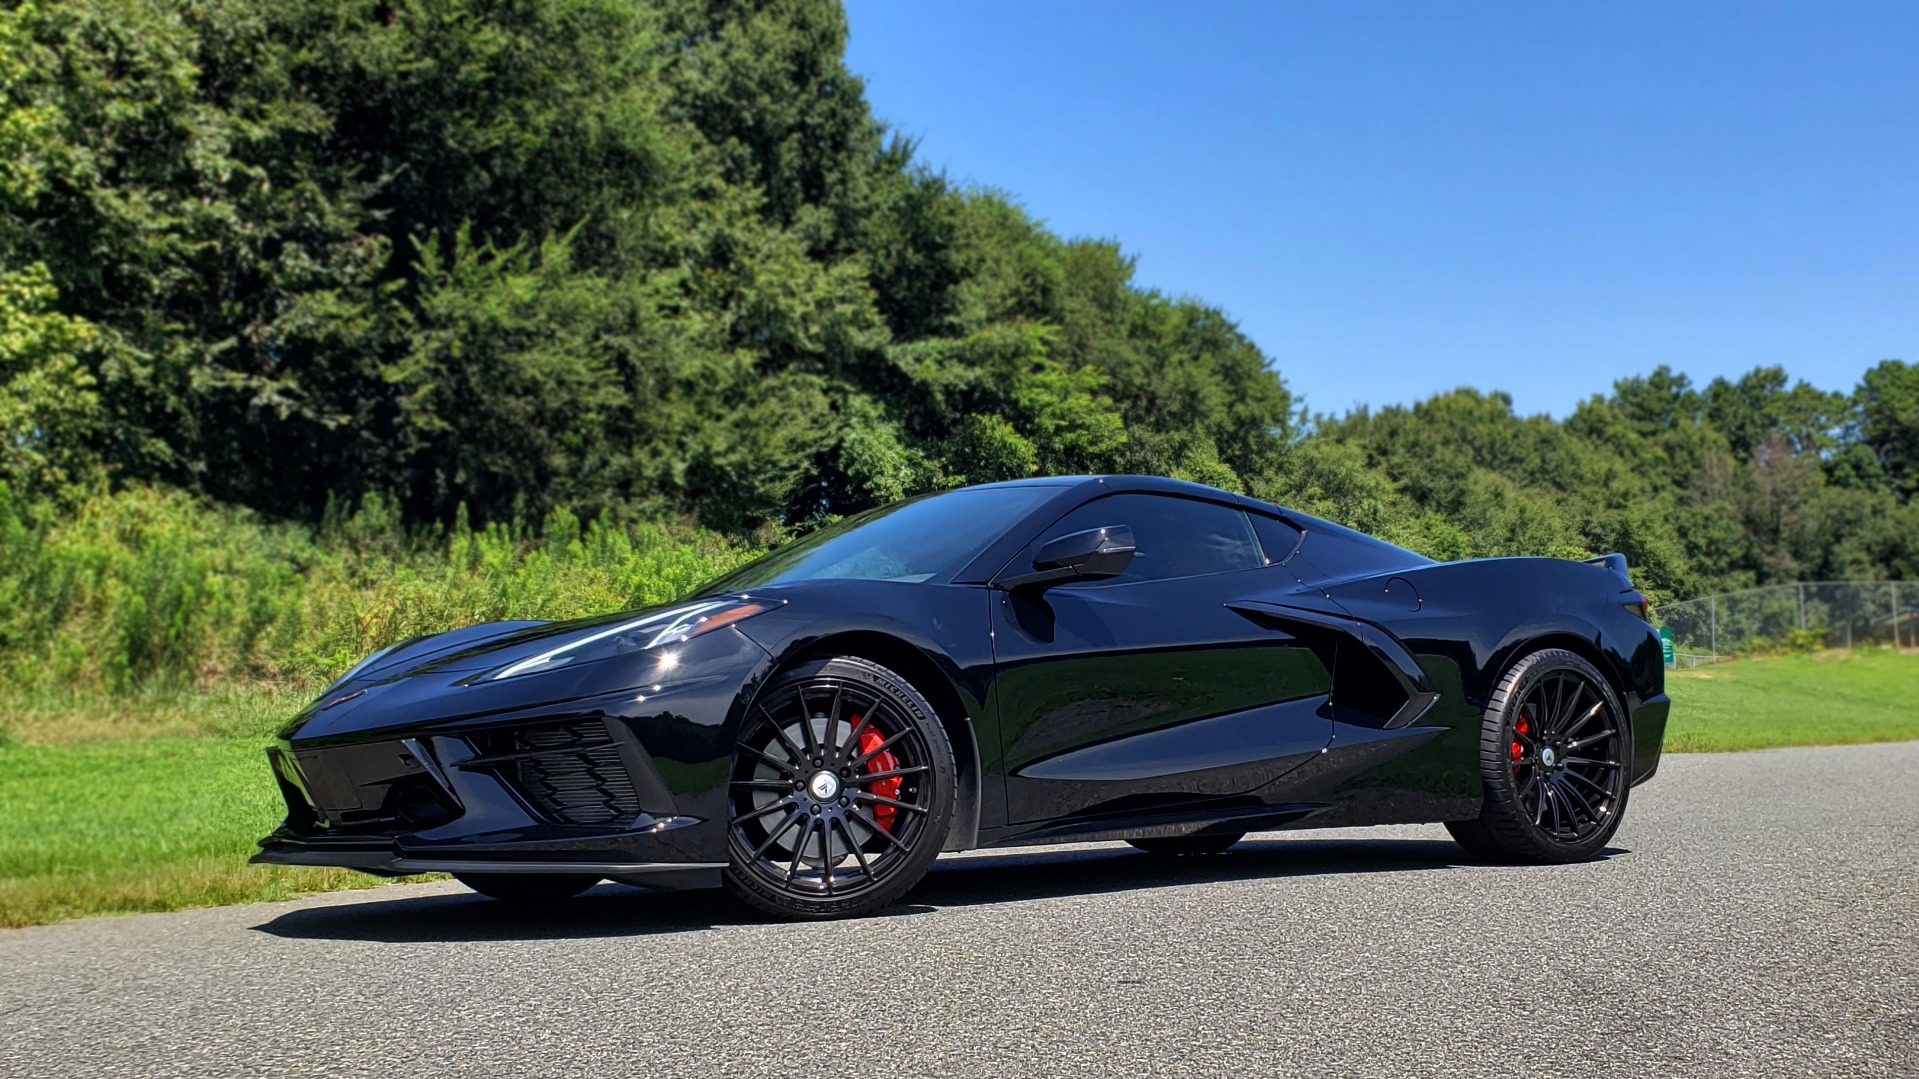 Used 2020 Chevrolet Corvette 2LT for sale Sold at Formula Imports in Charlotte NC 28227 3